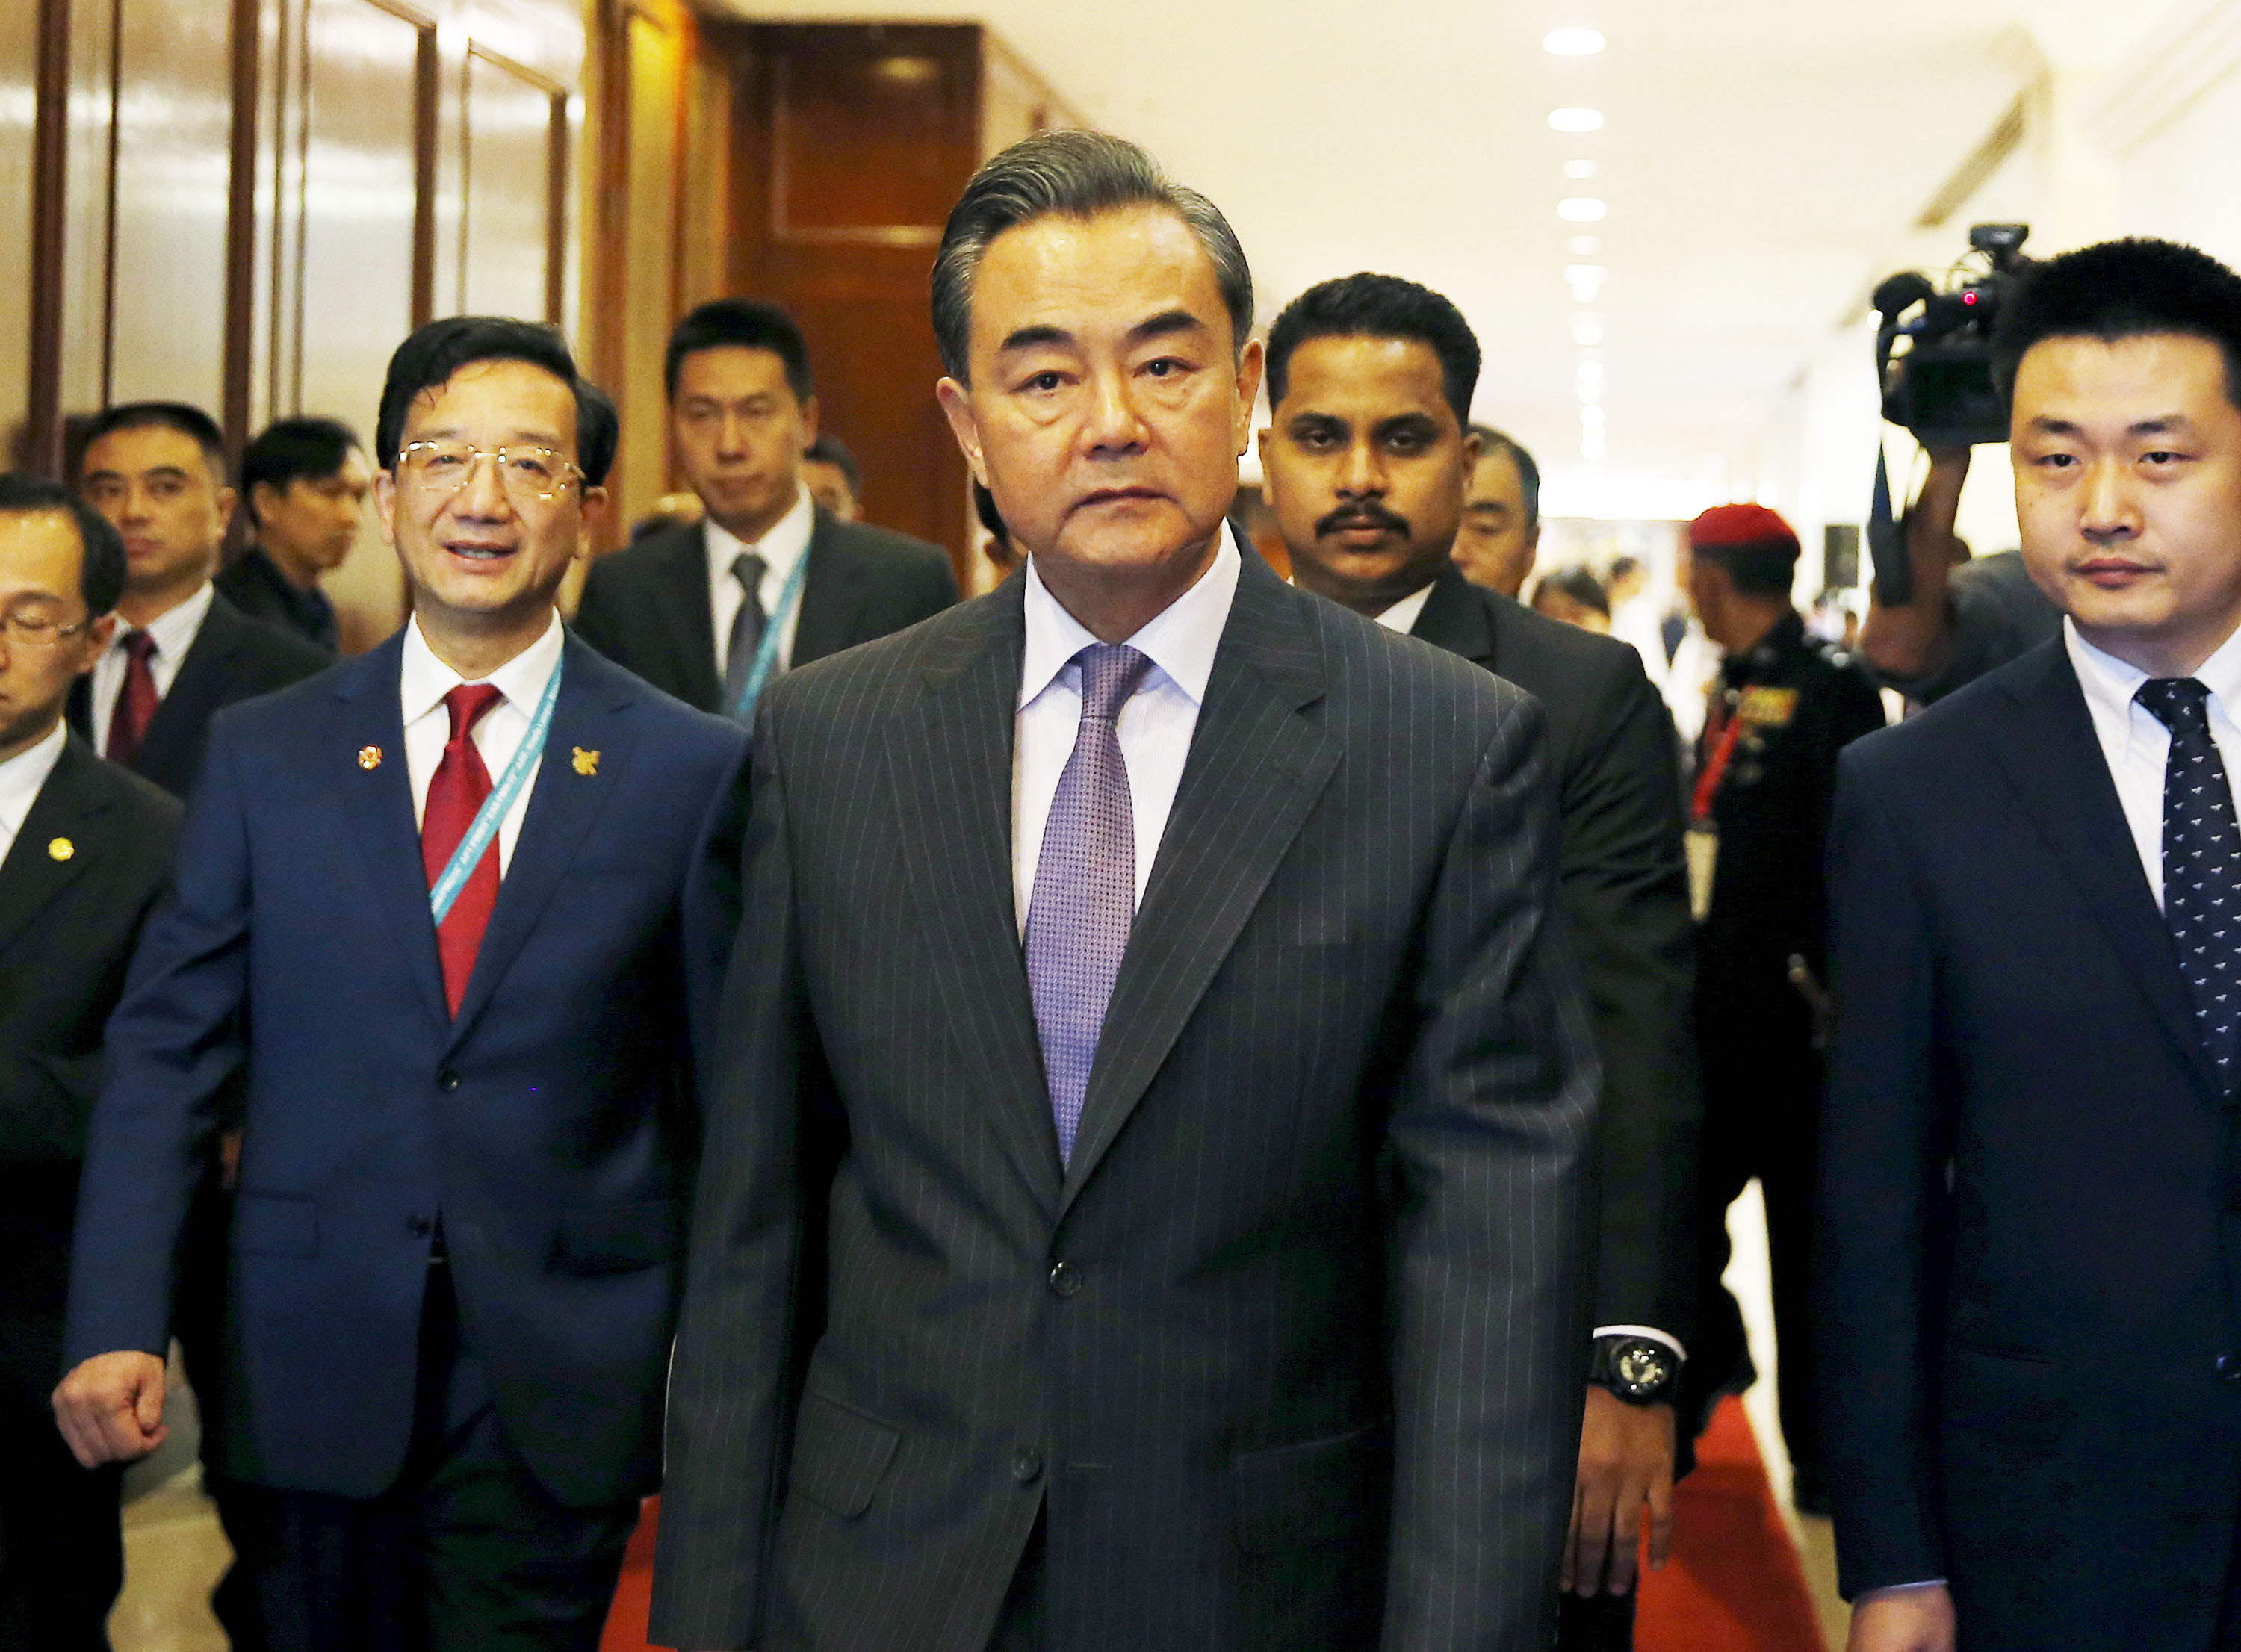 China's Foreign Minister Wang Yi arrives at a meeting during the 48th Association of Southeast Asian Nations (ASEAN) foreign ministers meeting in Kuala Lumpur, Malaysia, Aug. 4, 2015.